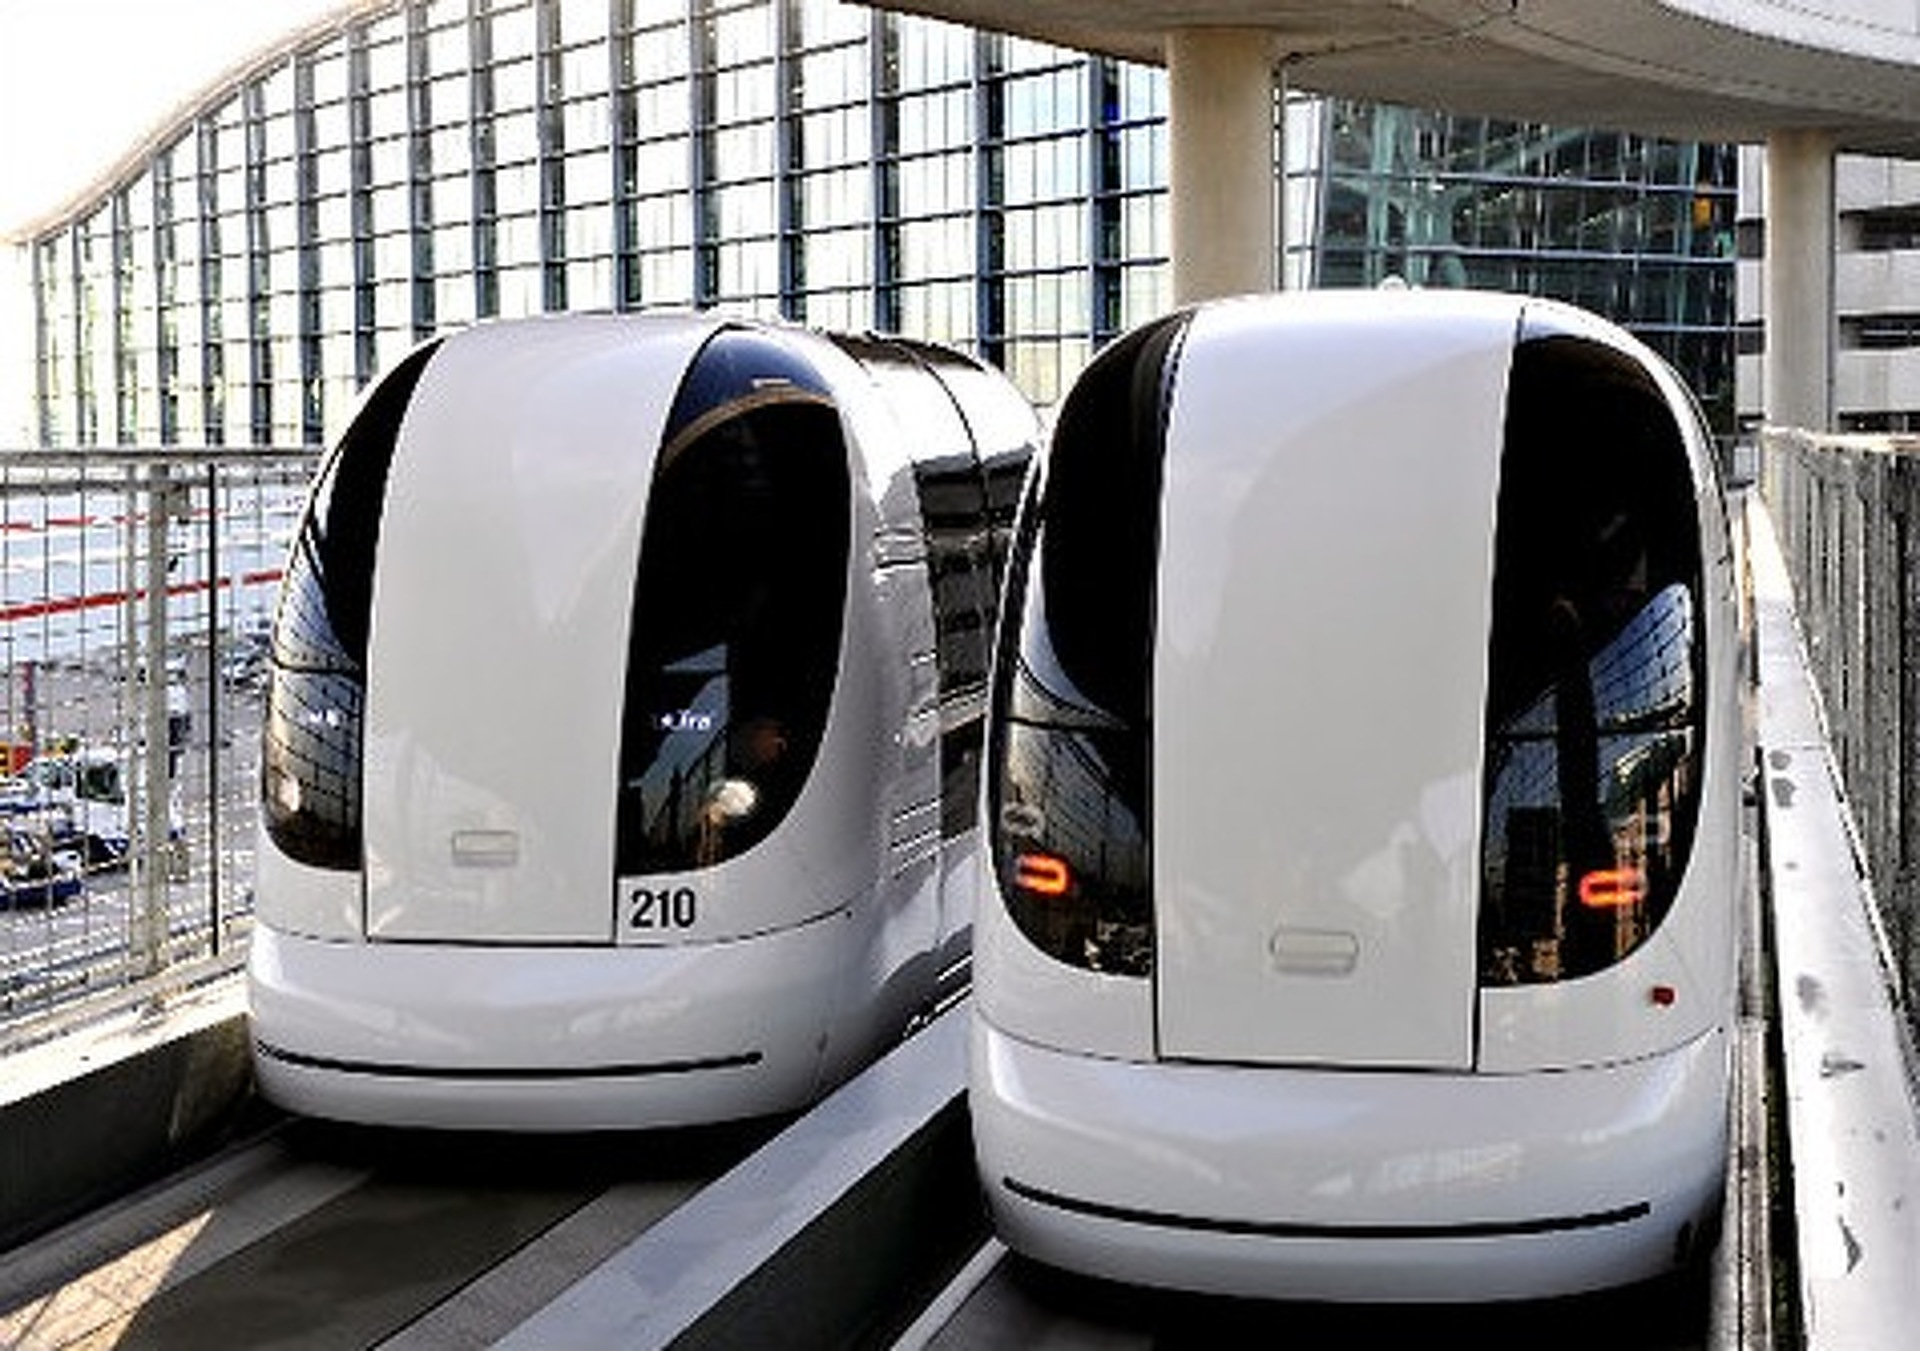 Self-Driving Electric Pod Cars Available in UK by 2015